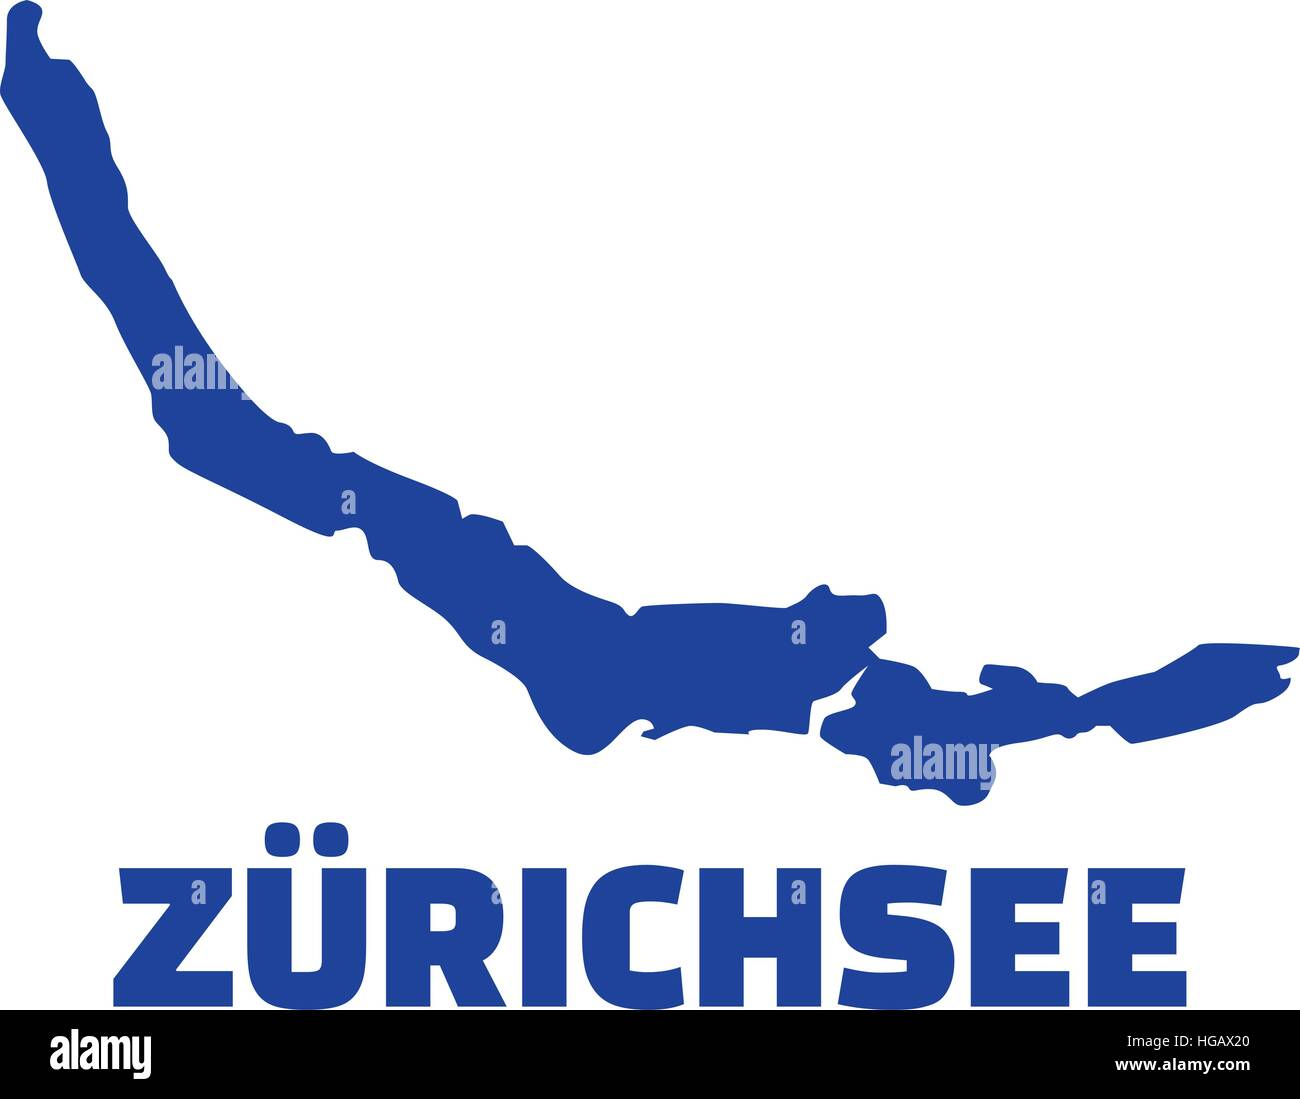 Lake Zurich silhouette with name - Stock Vector